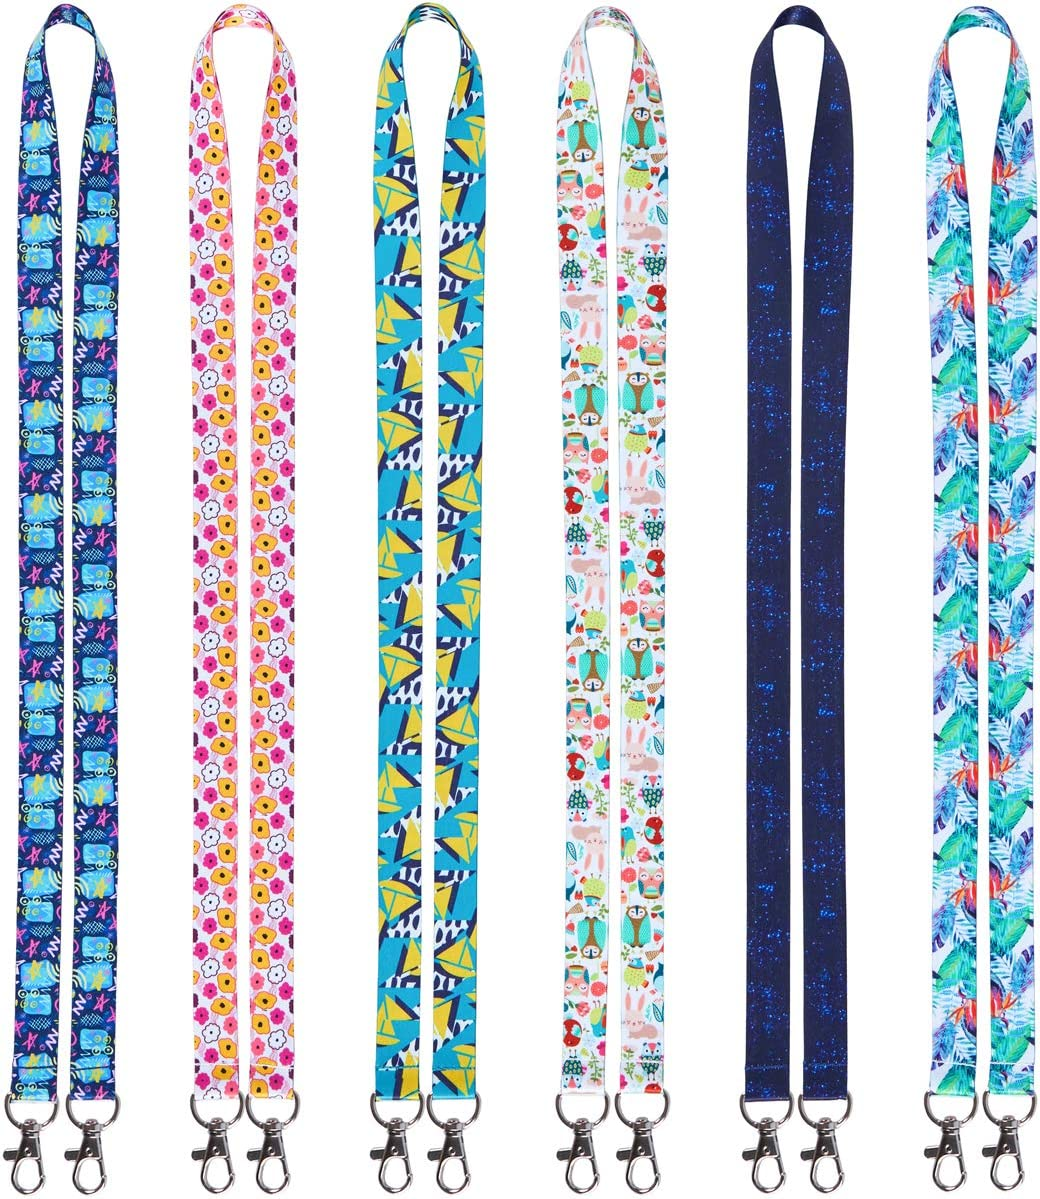 Lanyards for Kids face mask id Badges Holder 6 Pack Cute Lanyard Cartoon Owl YOUOWO Double Hook lanyards for ID Card Holder Bdges Keys Adult Keychains Neck Office Lanyard Wide0.79 inches 2cm